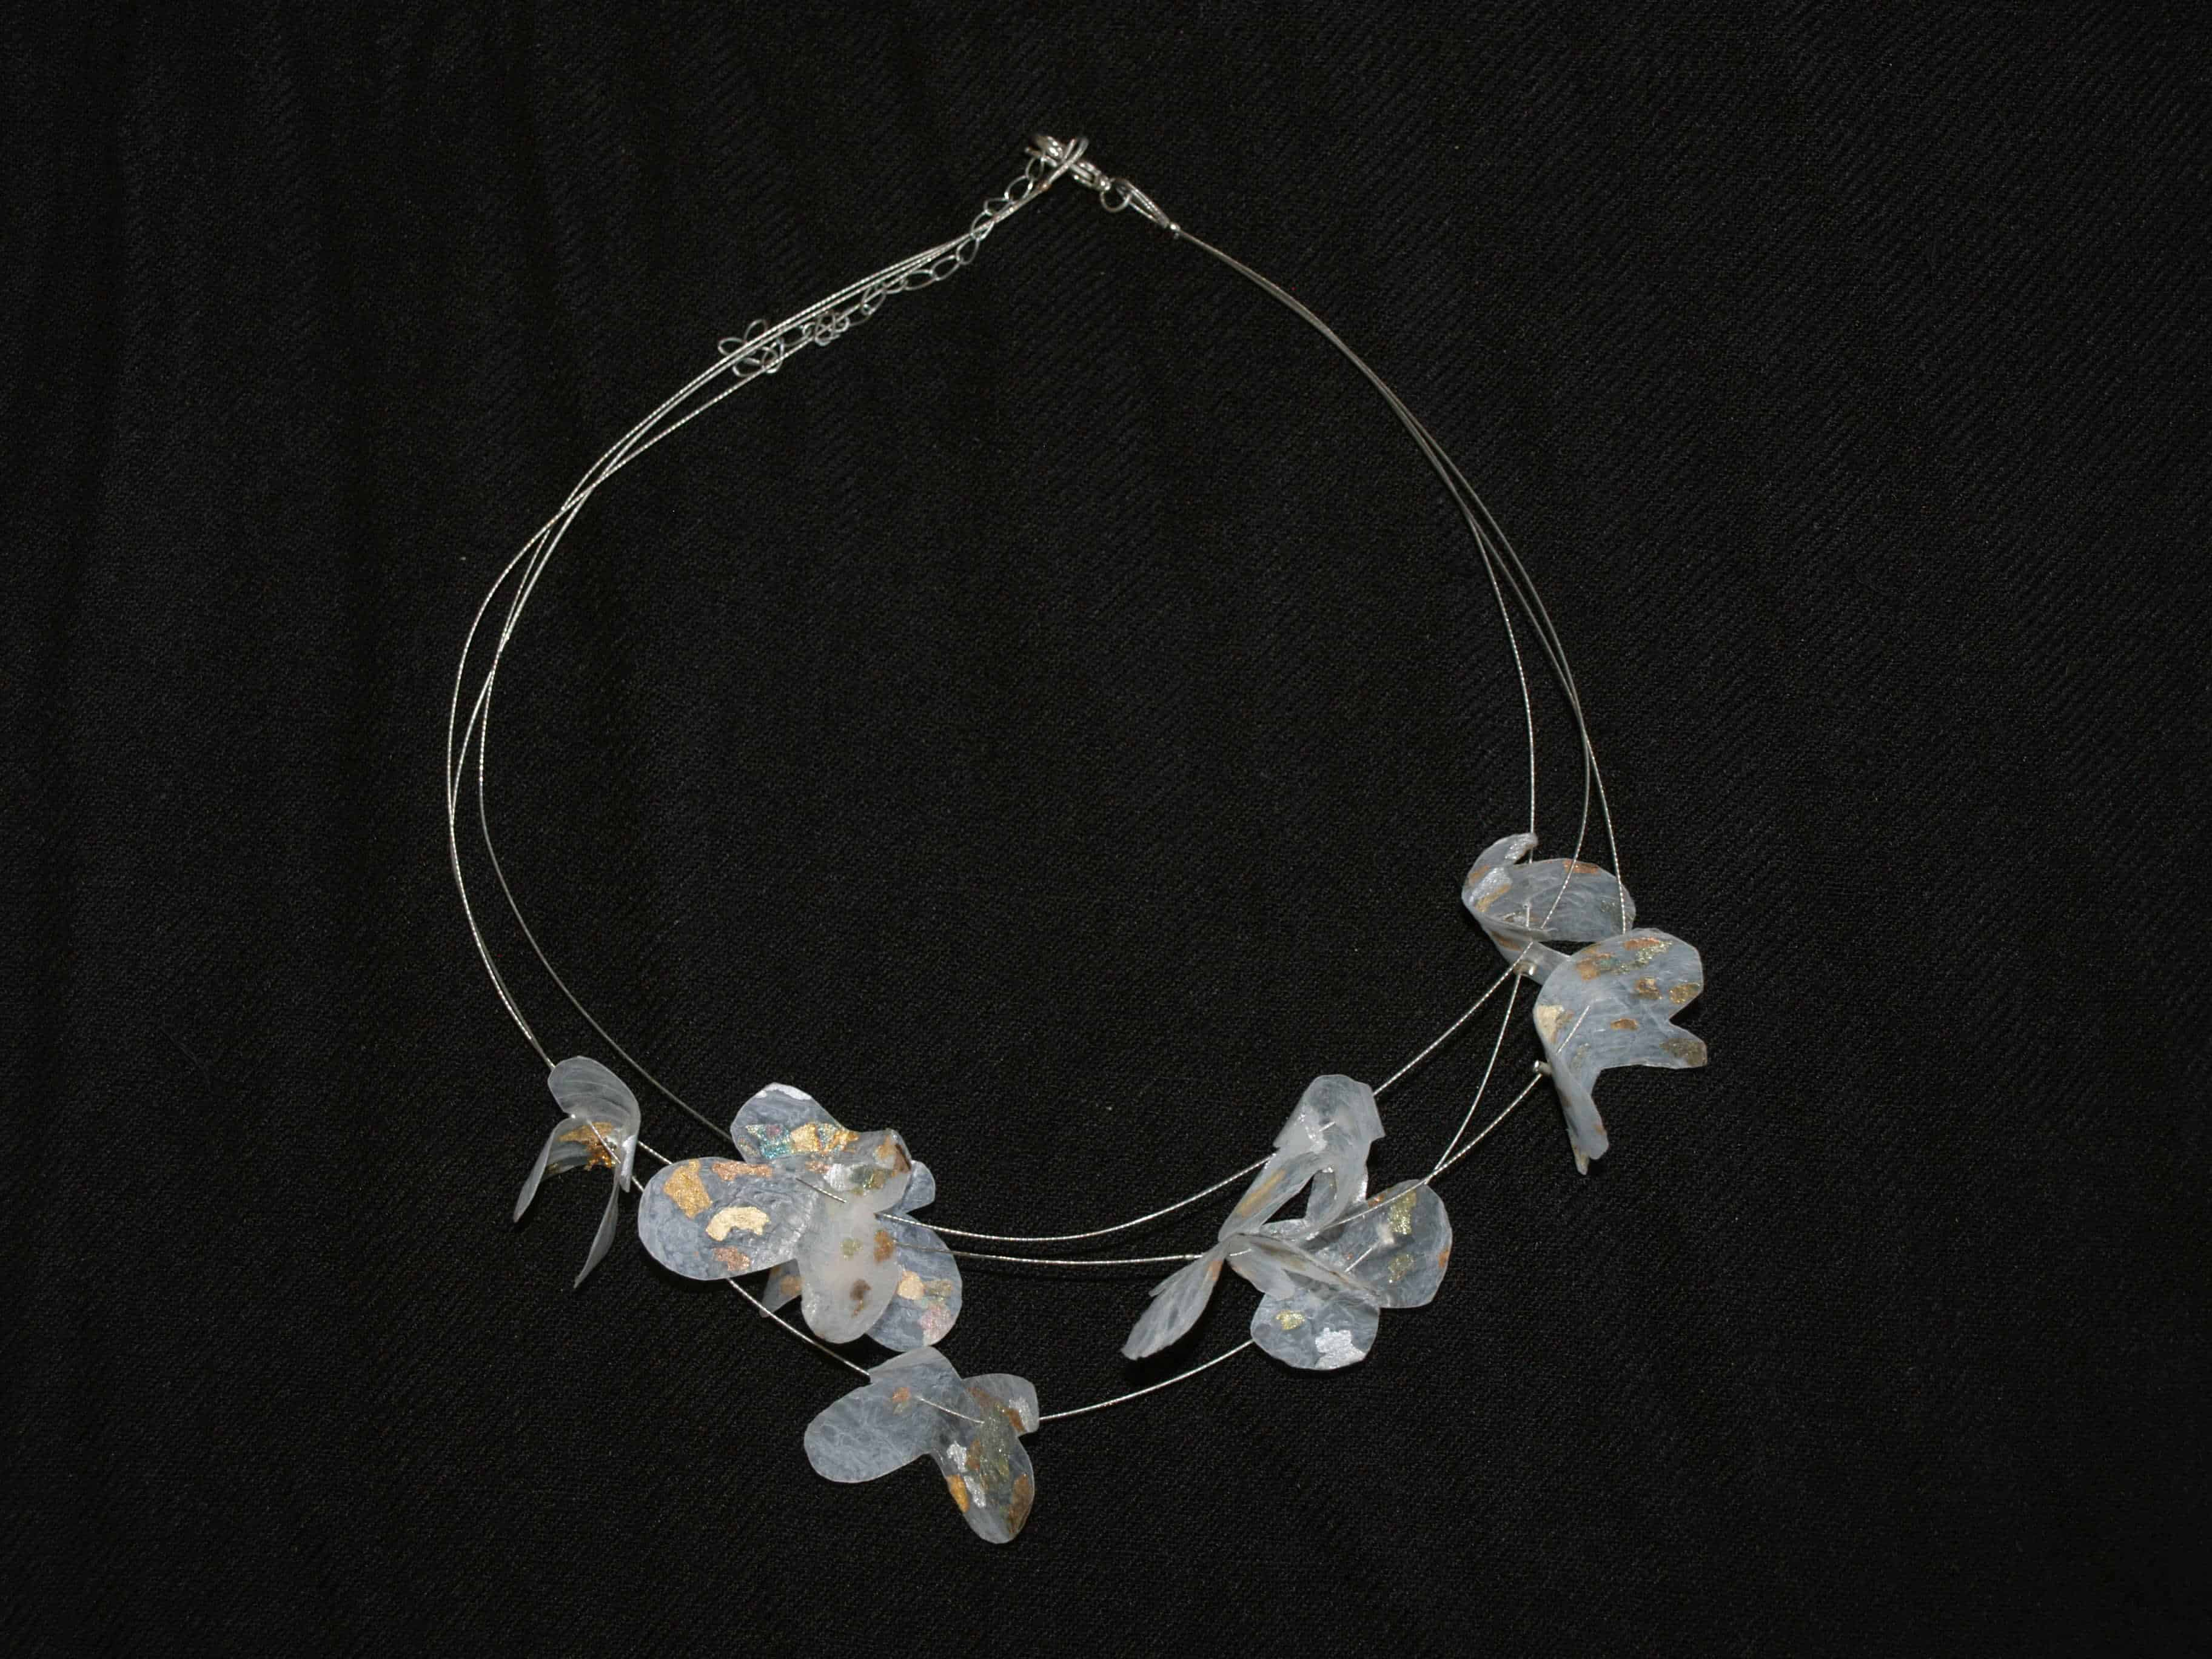 Necklace Made With Recycled Plastic Bags Recyclart